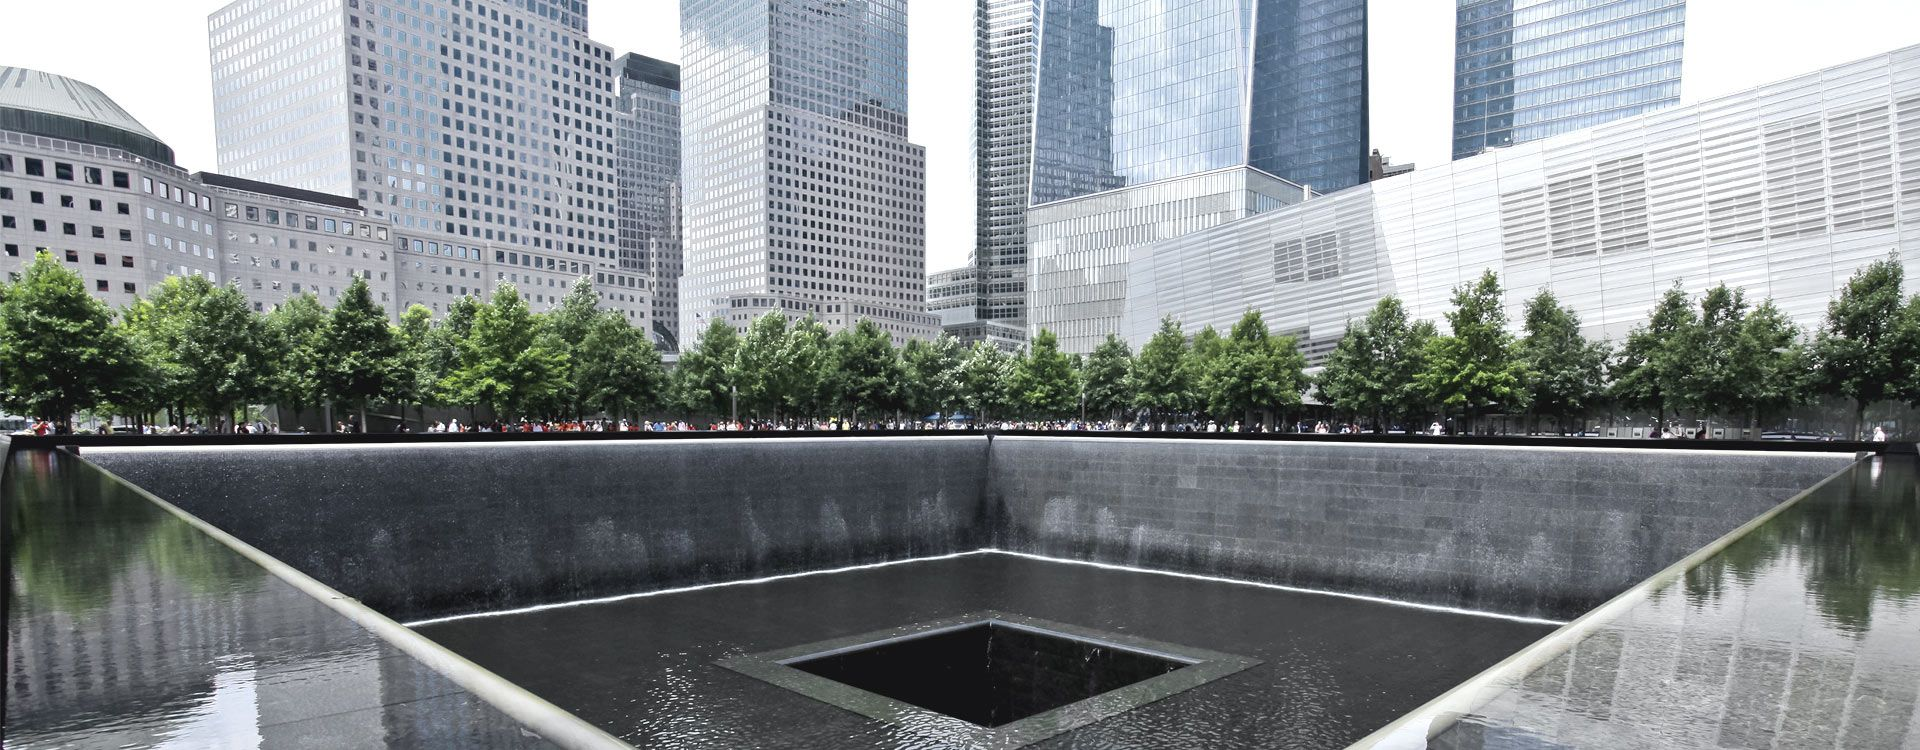 bnr-National-September-11-Memorial-and-Museum_Cultural